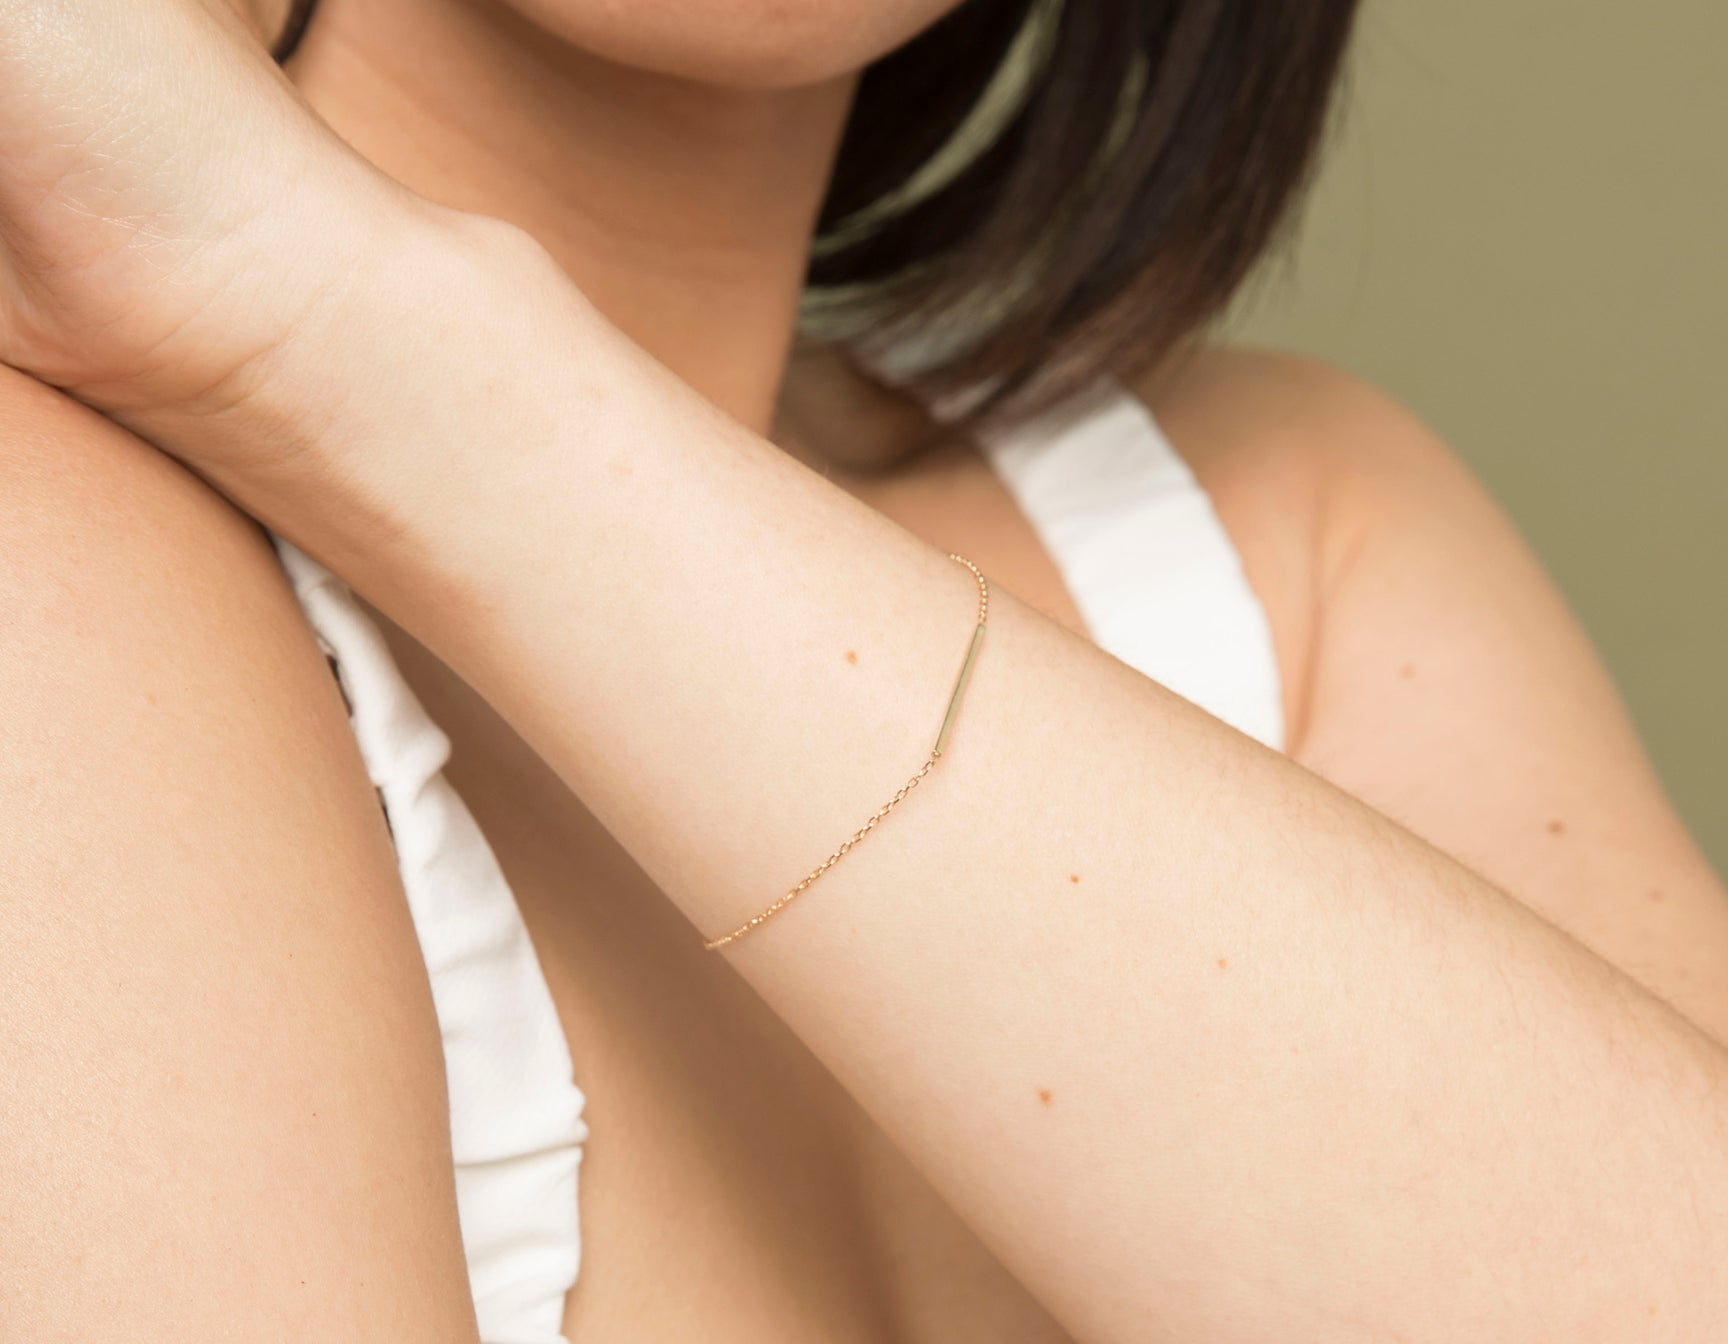 Model wearing sleek Vrai solid gold Line Bracelet, 14K Rose Gold